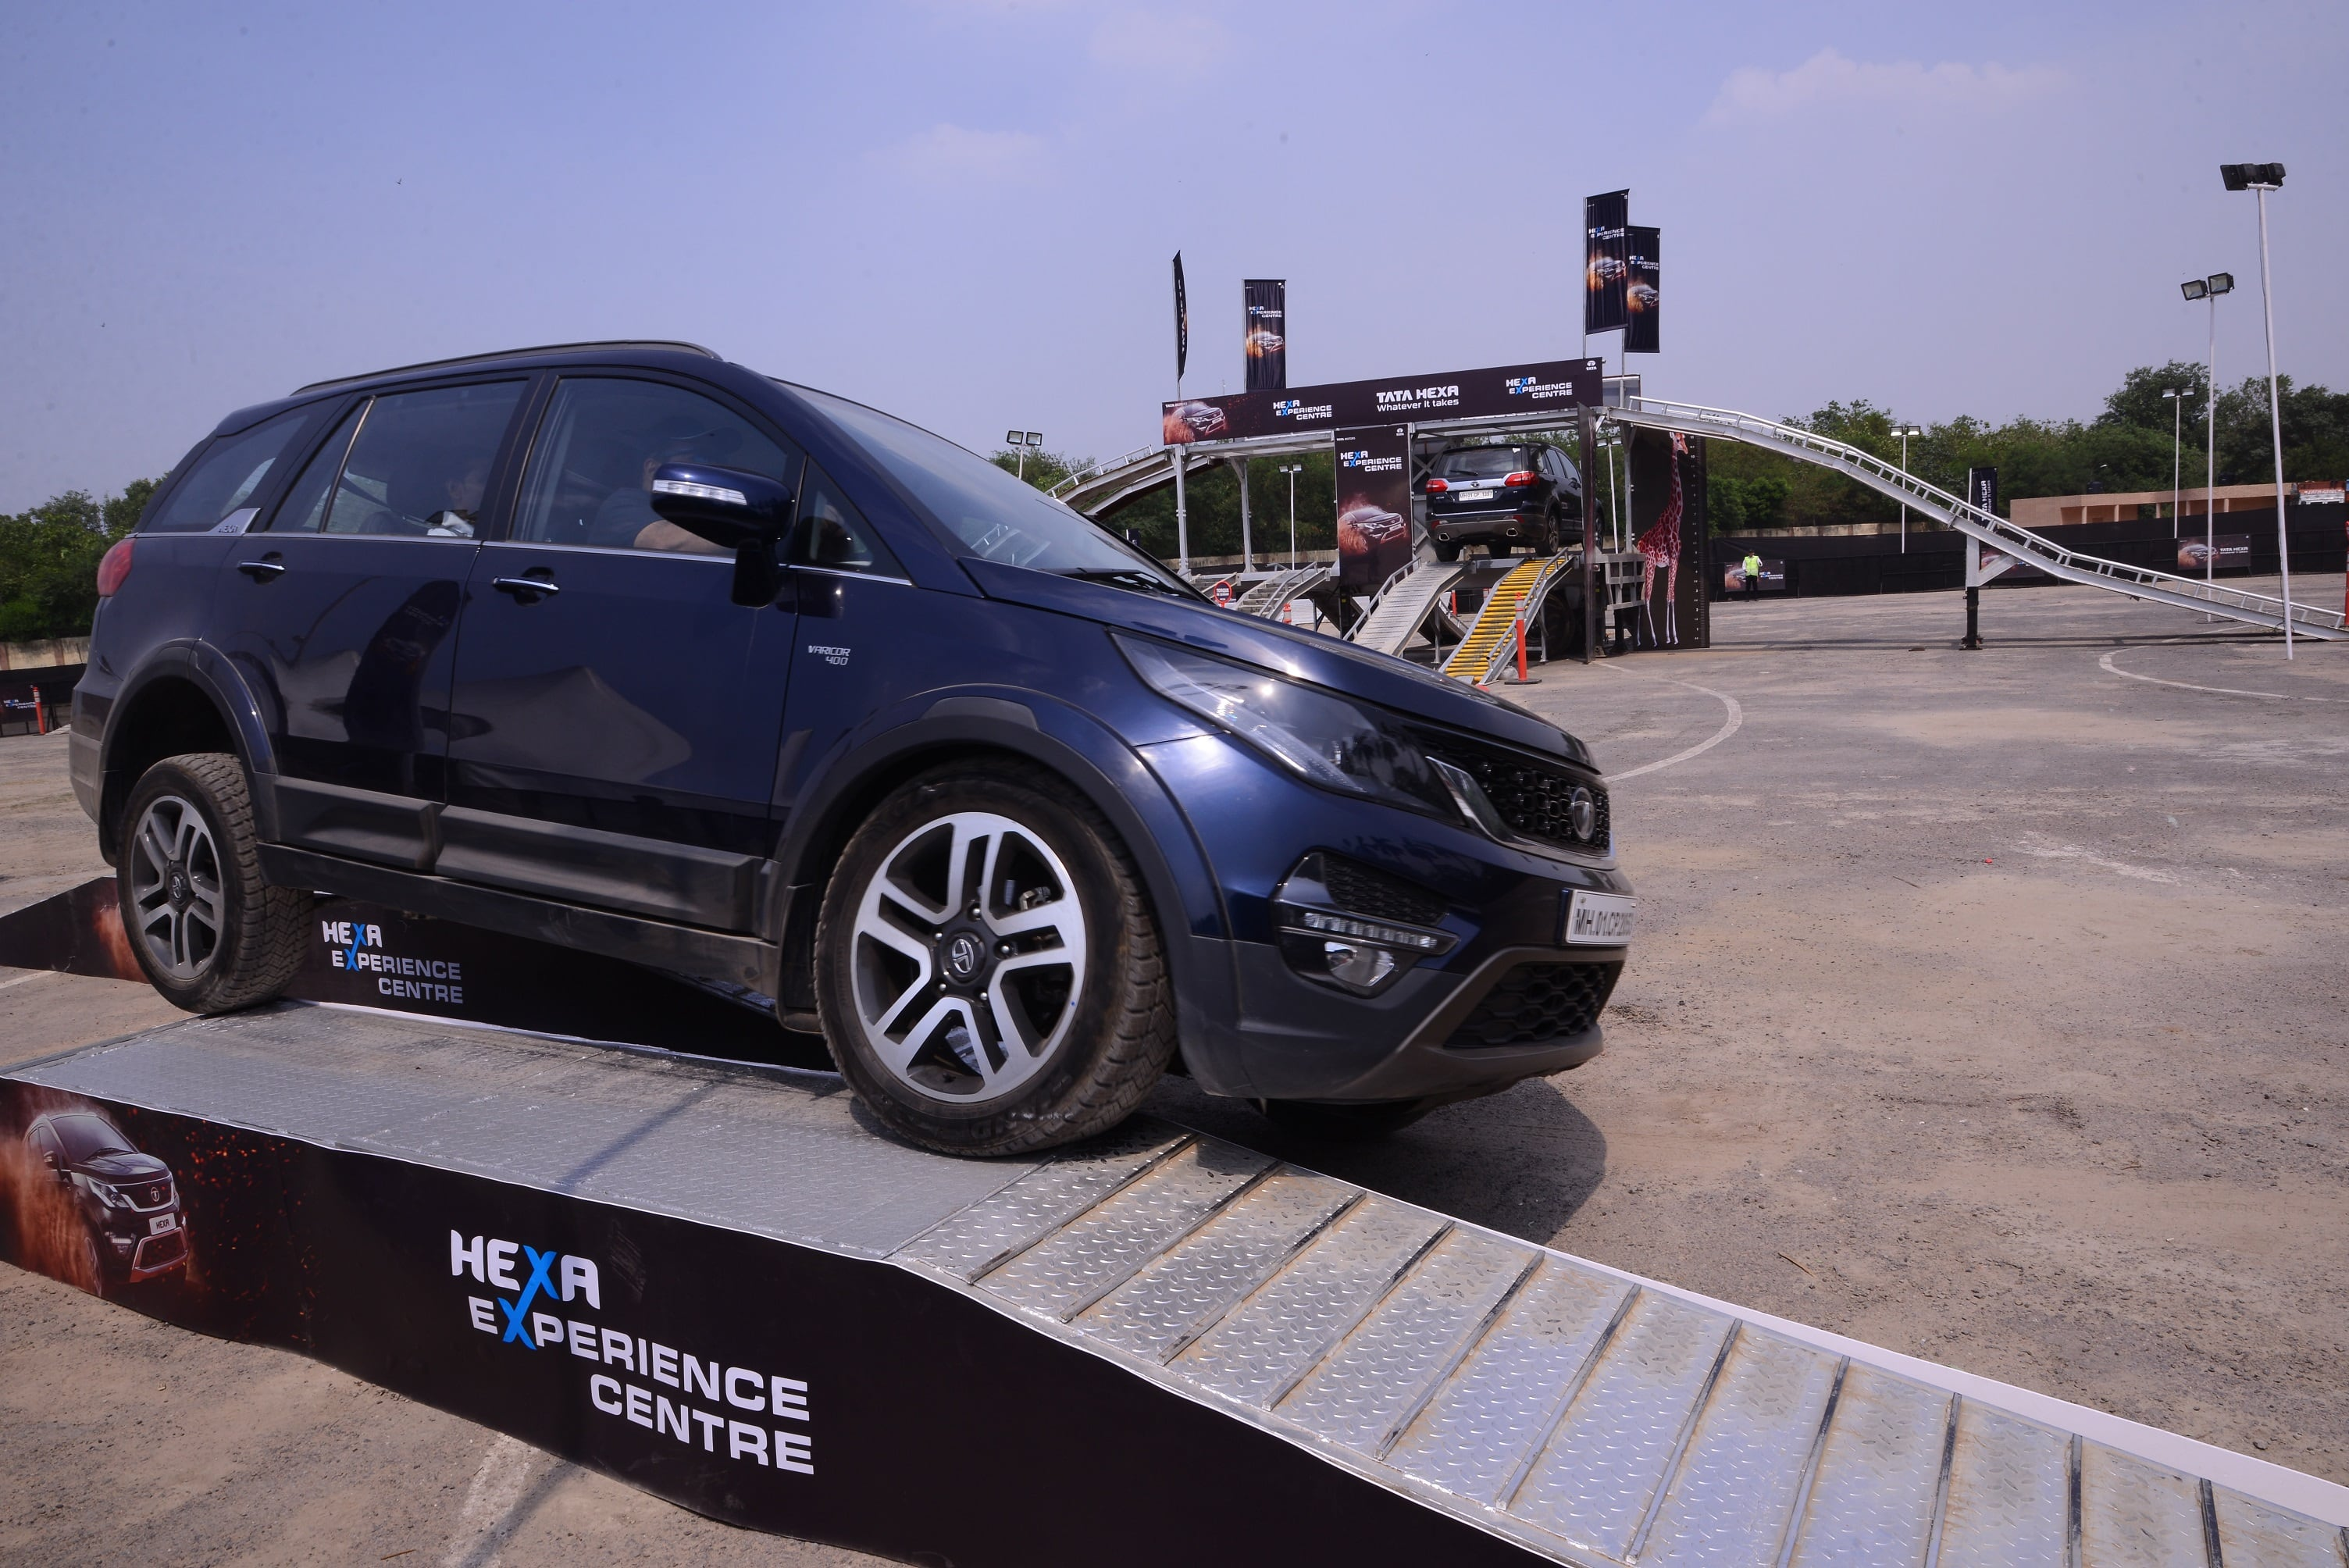 Tata concludes the Phase 2 of Hexa off-road experience zone in Delhi